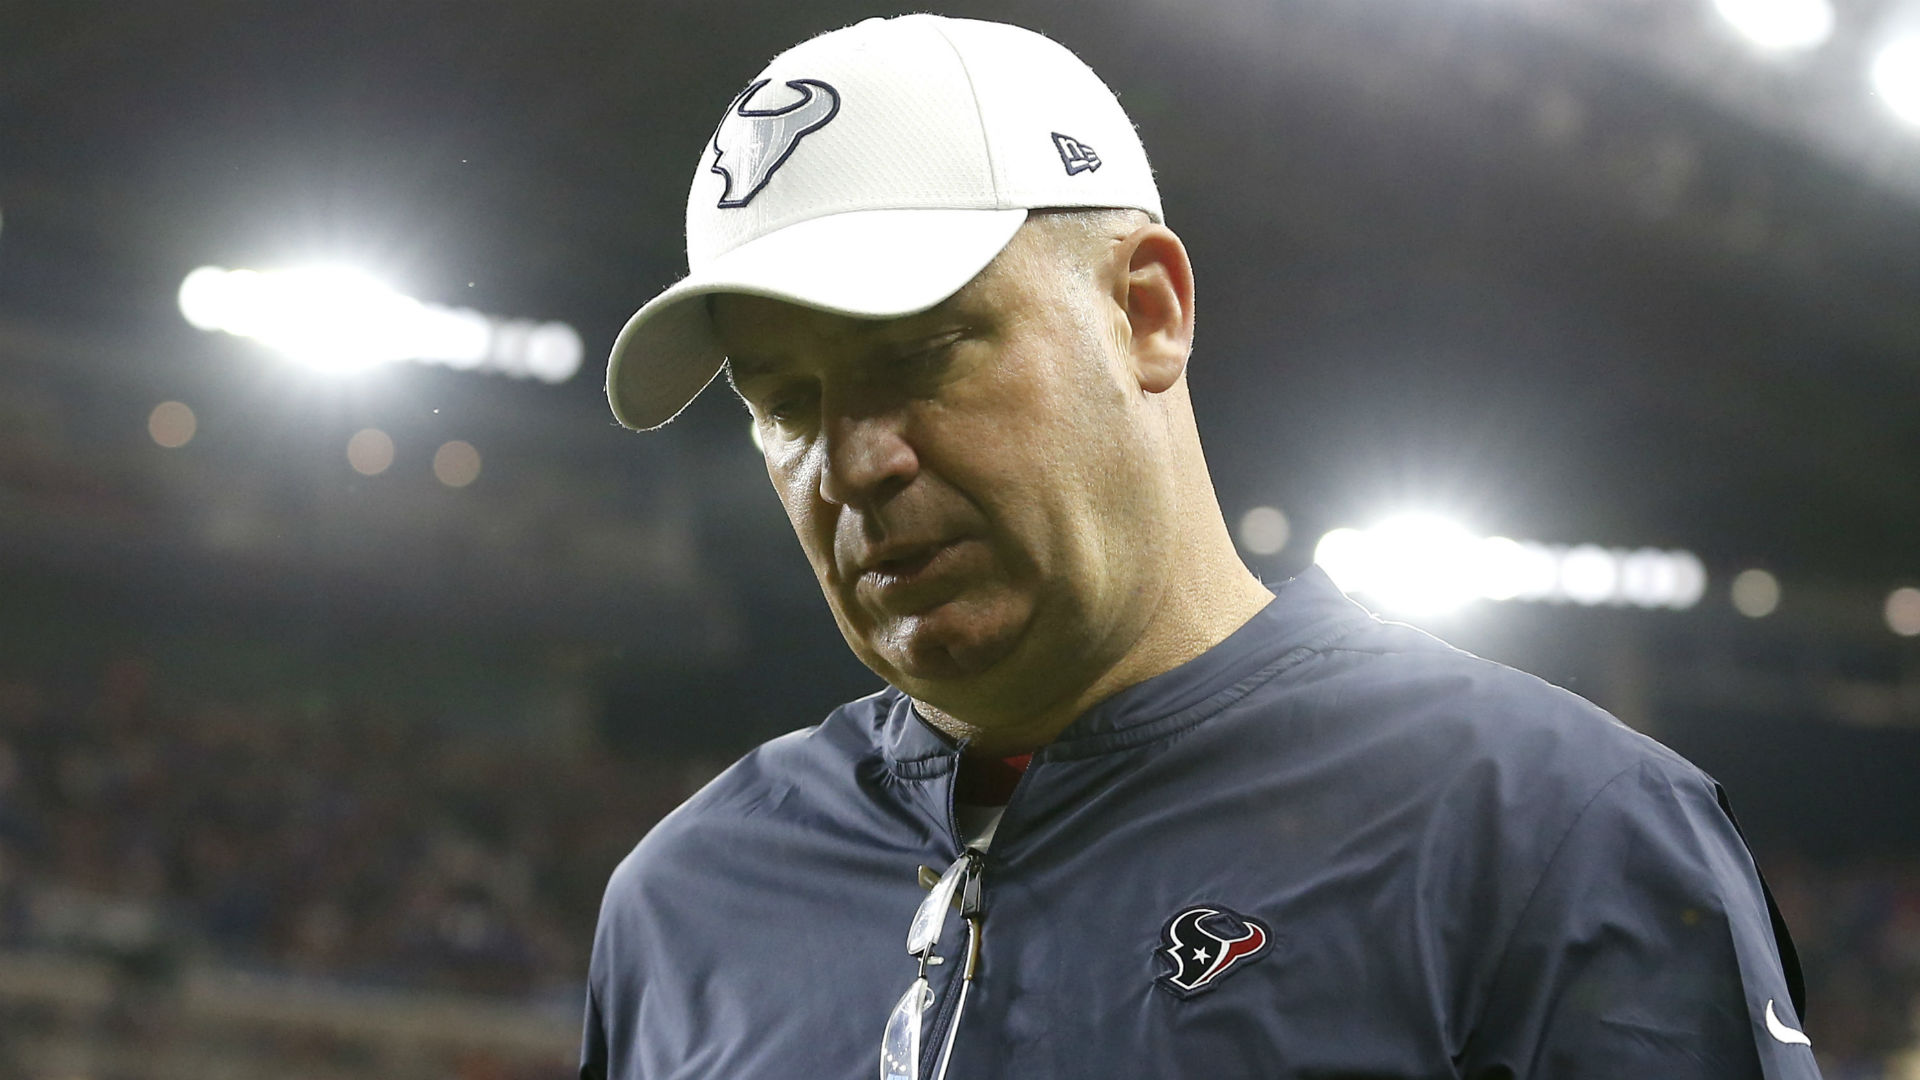 Should Texans fire Bill O'Brien? Houston coach defends himself after disastrous playoff loss